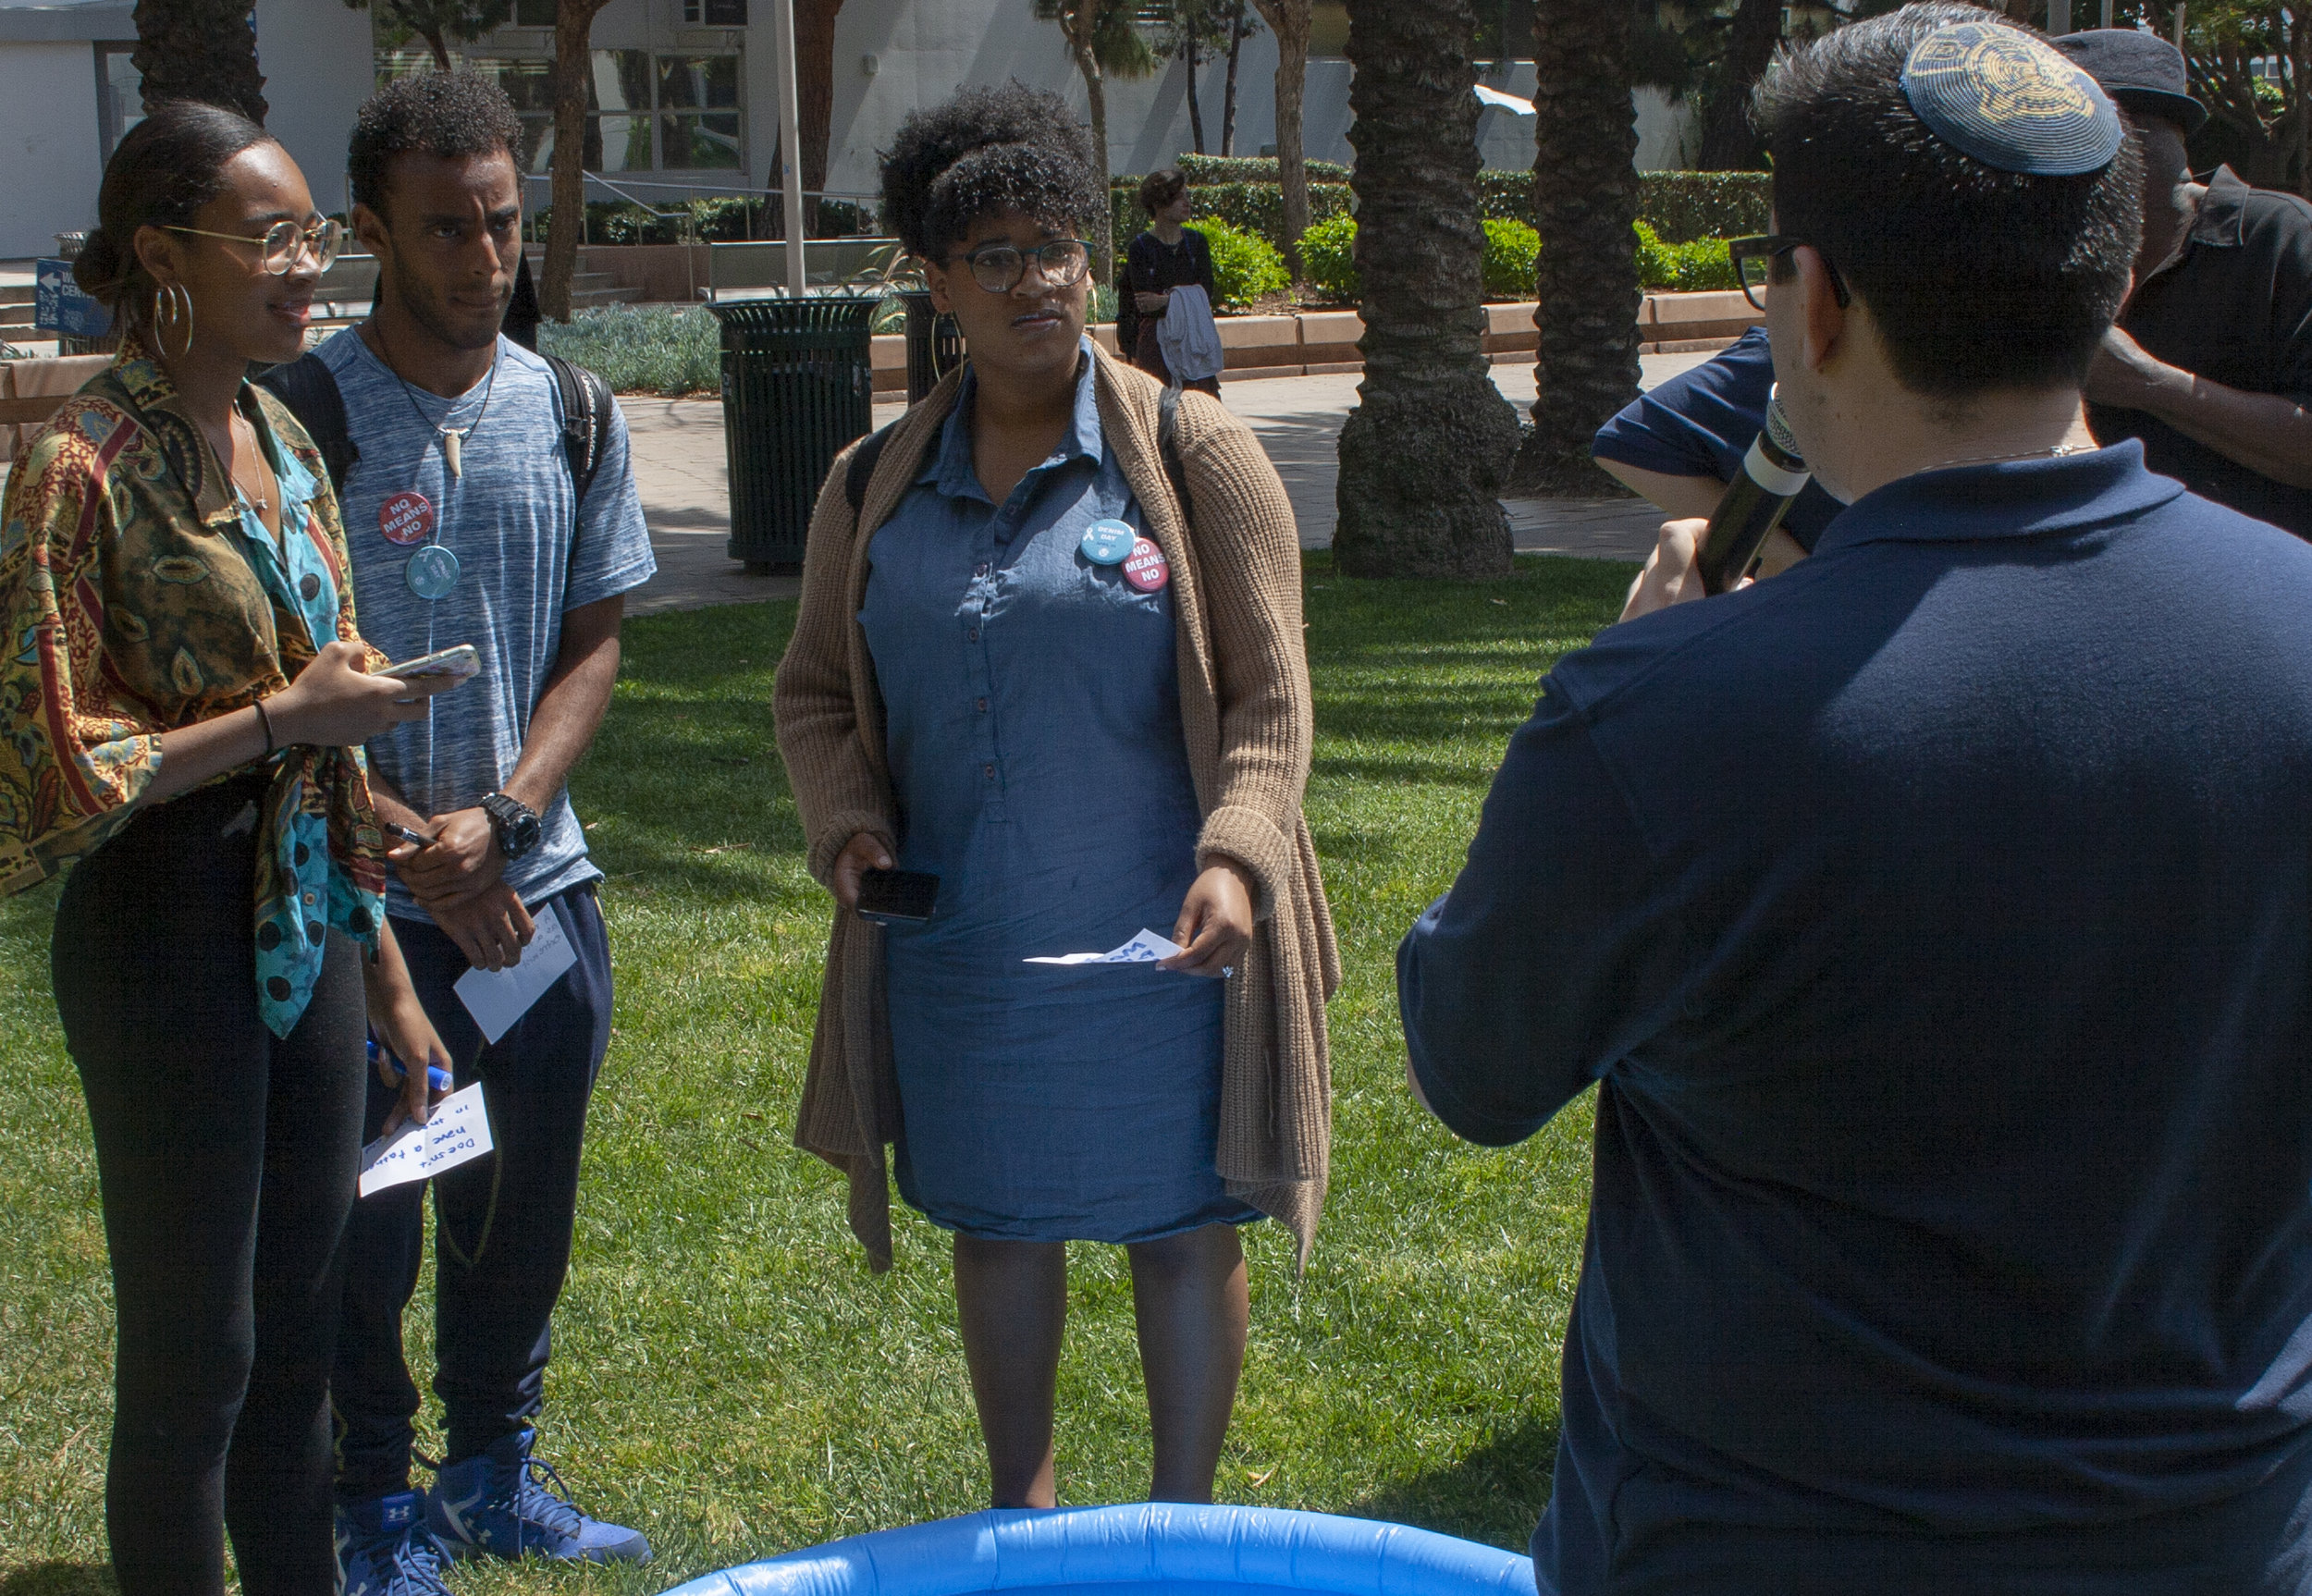 """Students from Santa Monica College participate in an event hosted by the A.S named """"Not On Our Campus"""" this past April 18, 2019. They were all invited to participate in drowning words of hate. The goal of the event was to drown the feelings, stigmas or words of oppression directed to them, so that the water would drown them. (The Corsair/ Janet Ali)"""